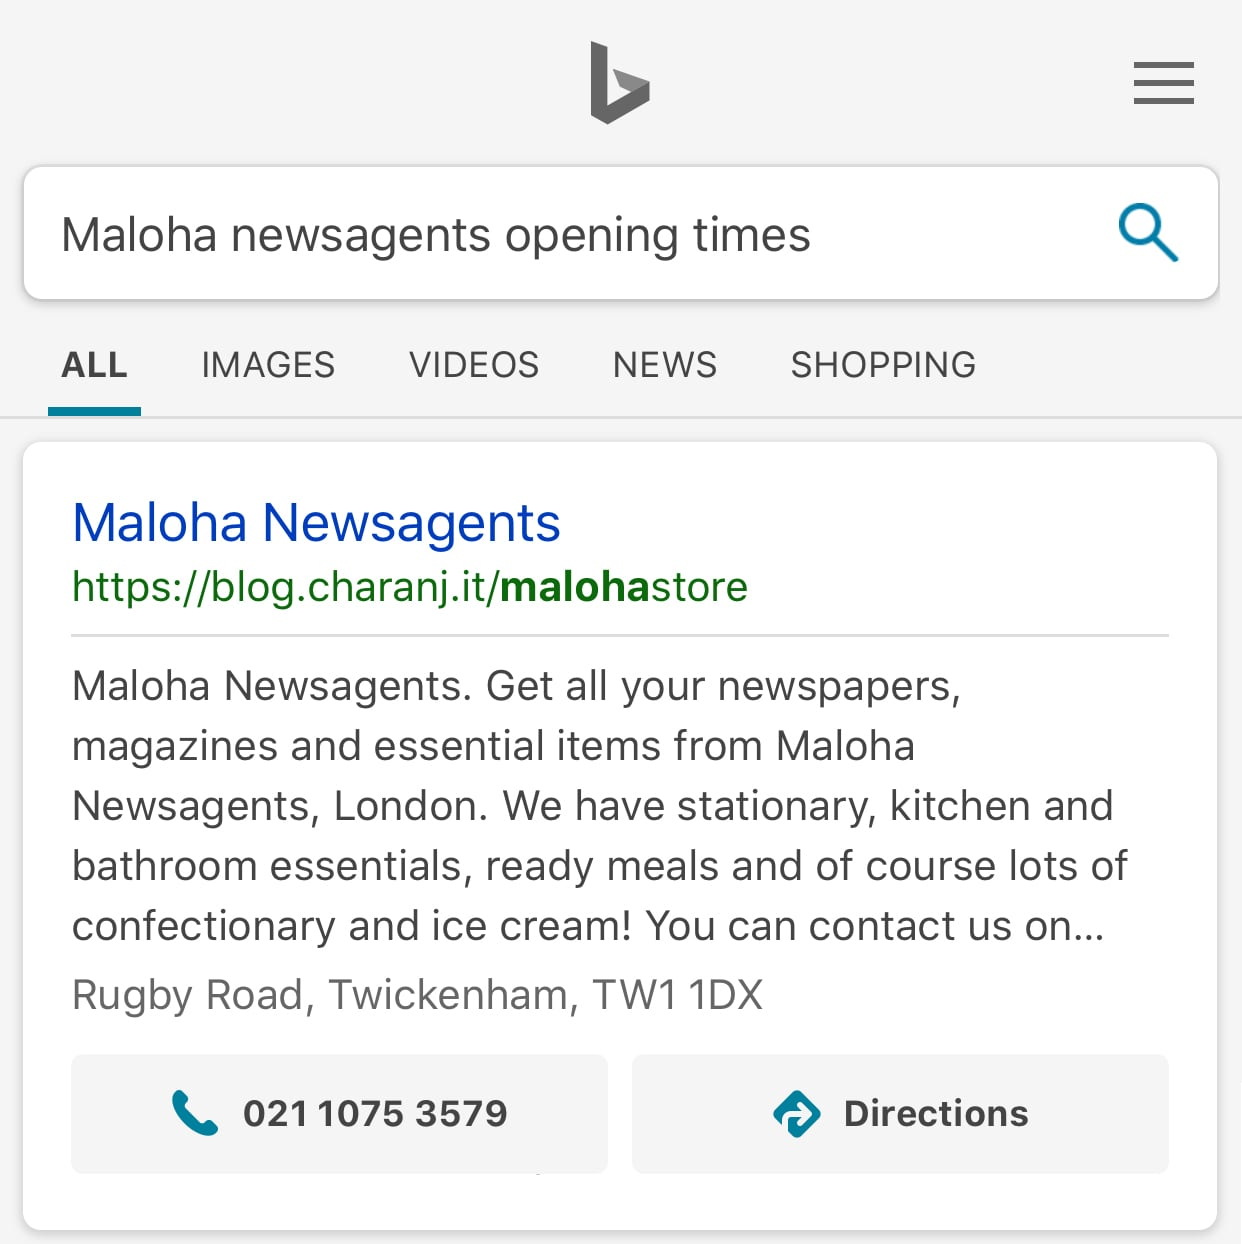 Bing mobile search results